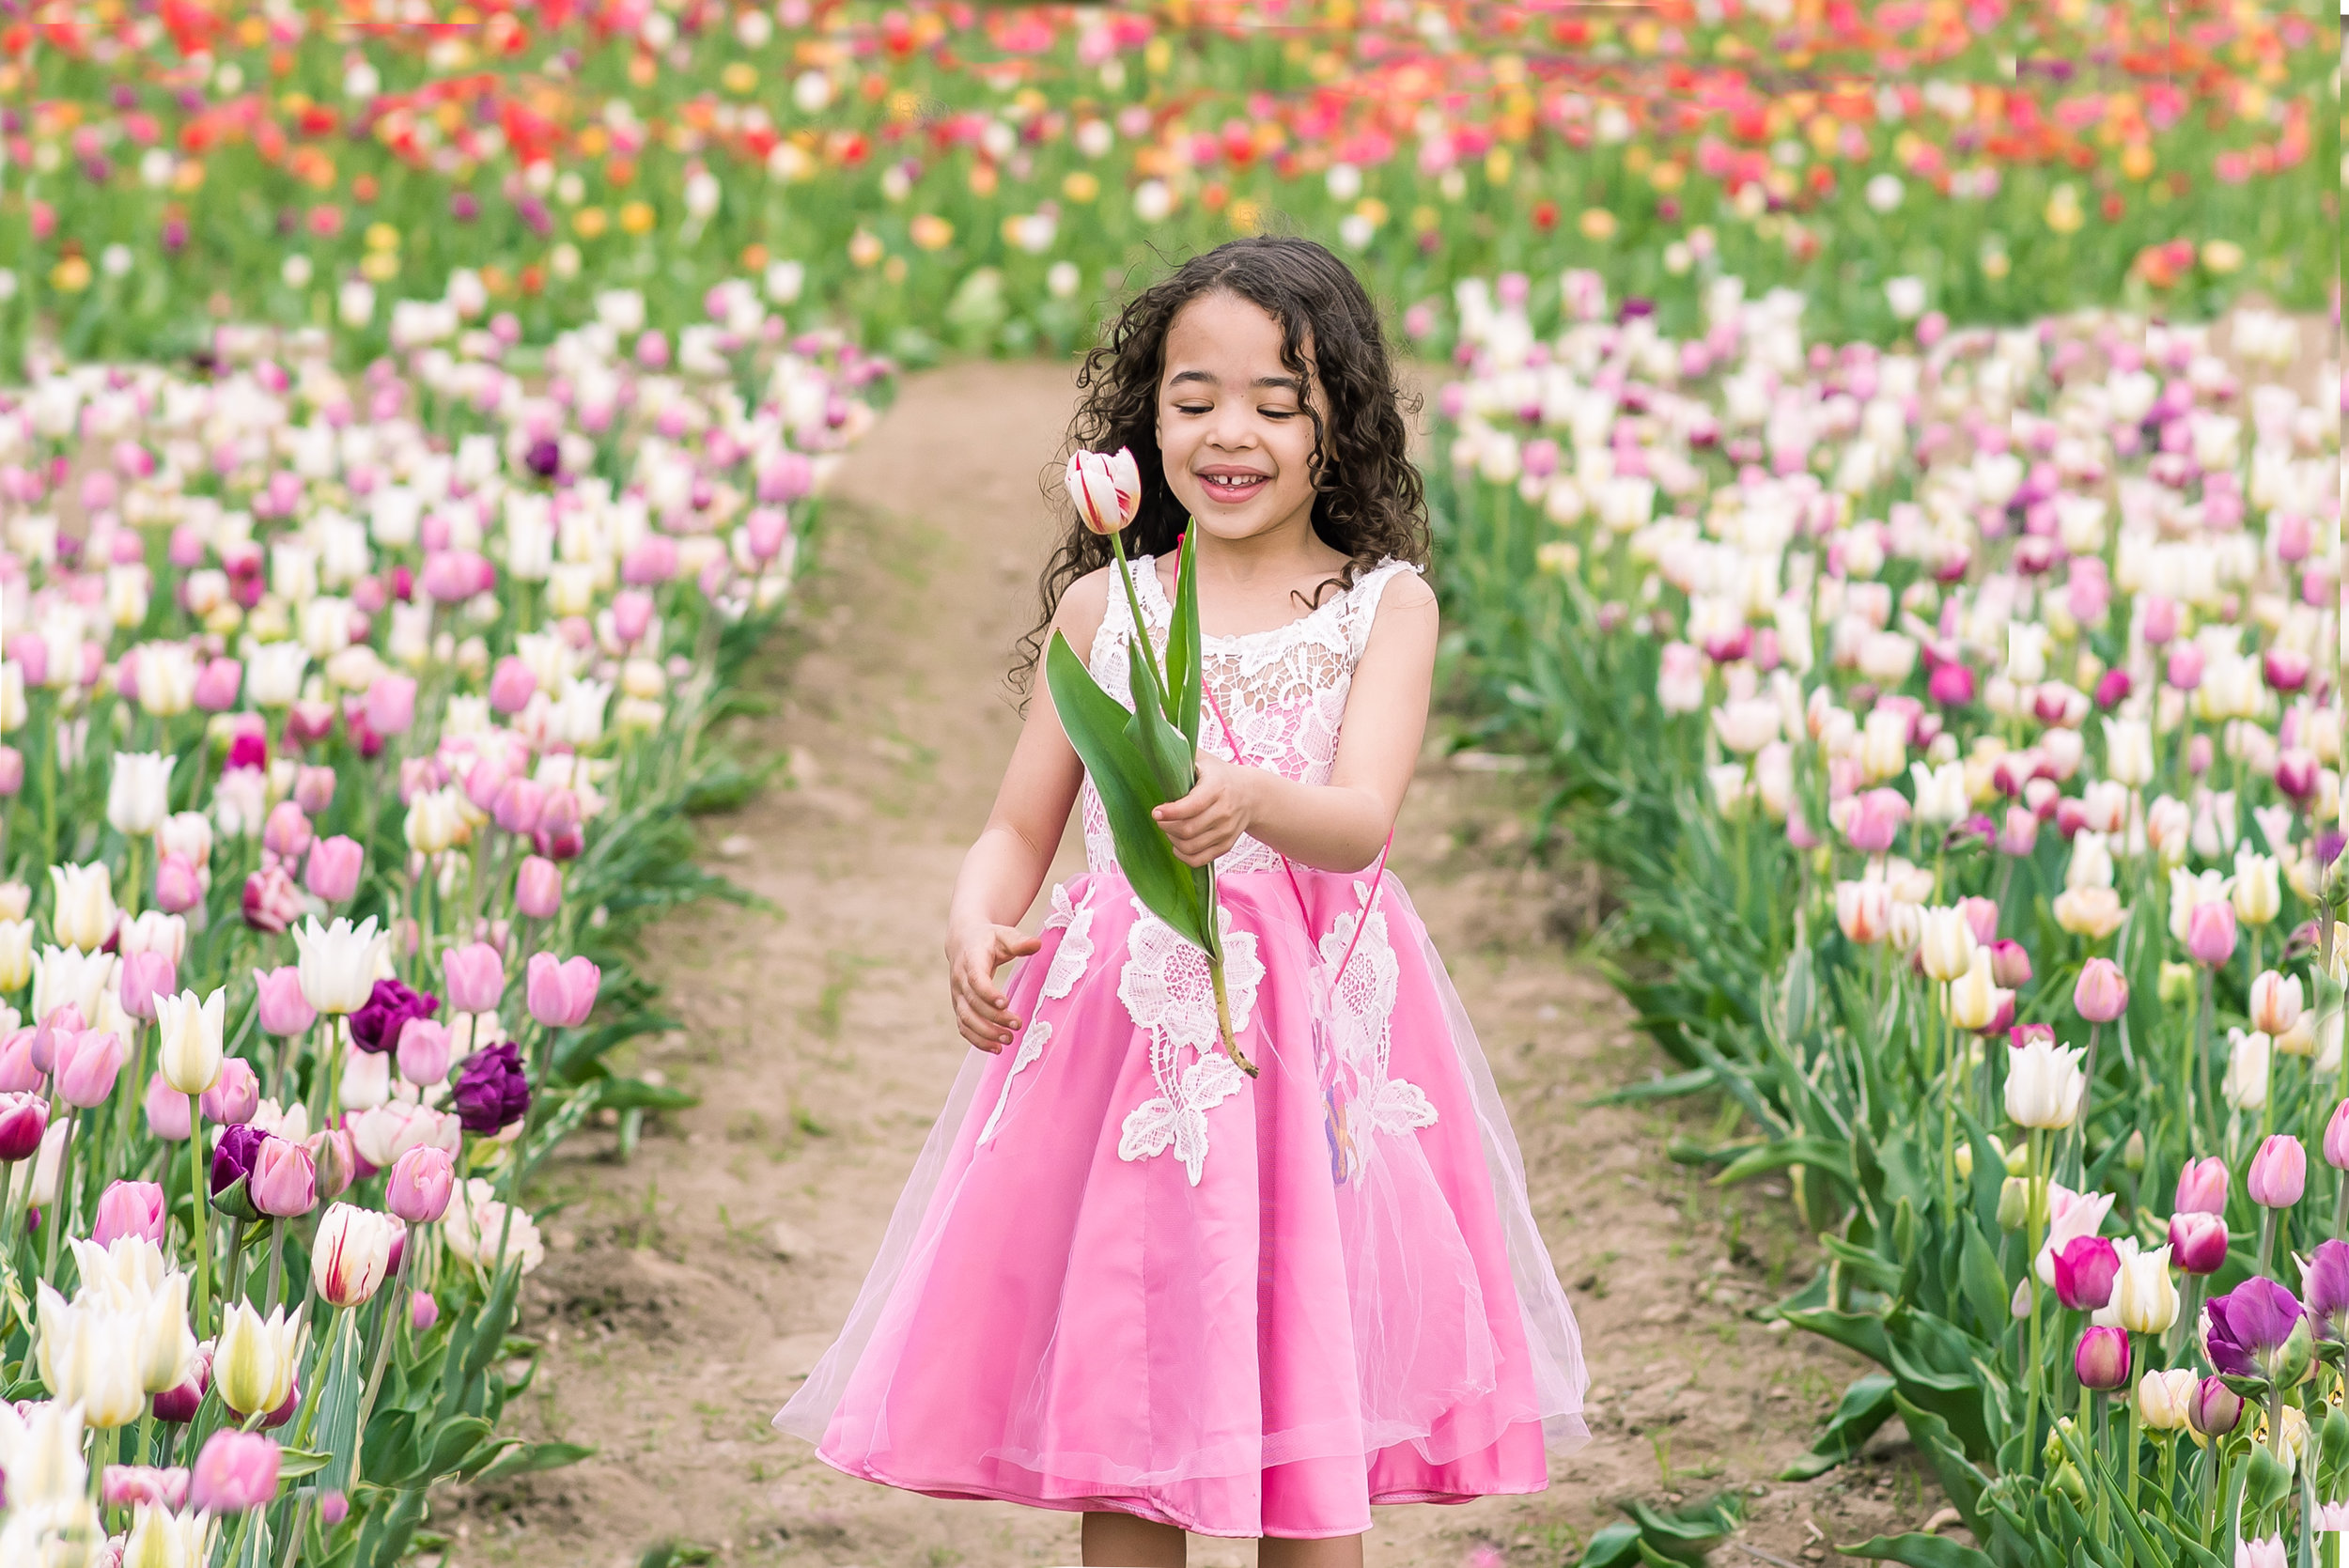 Candid portraits of girl picking tulips